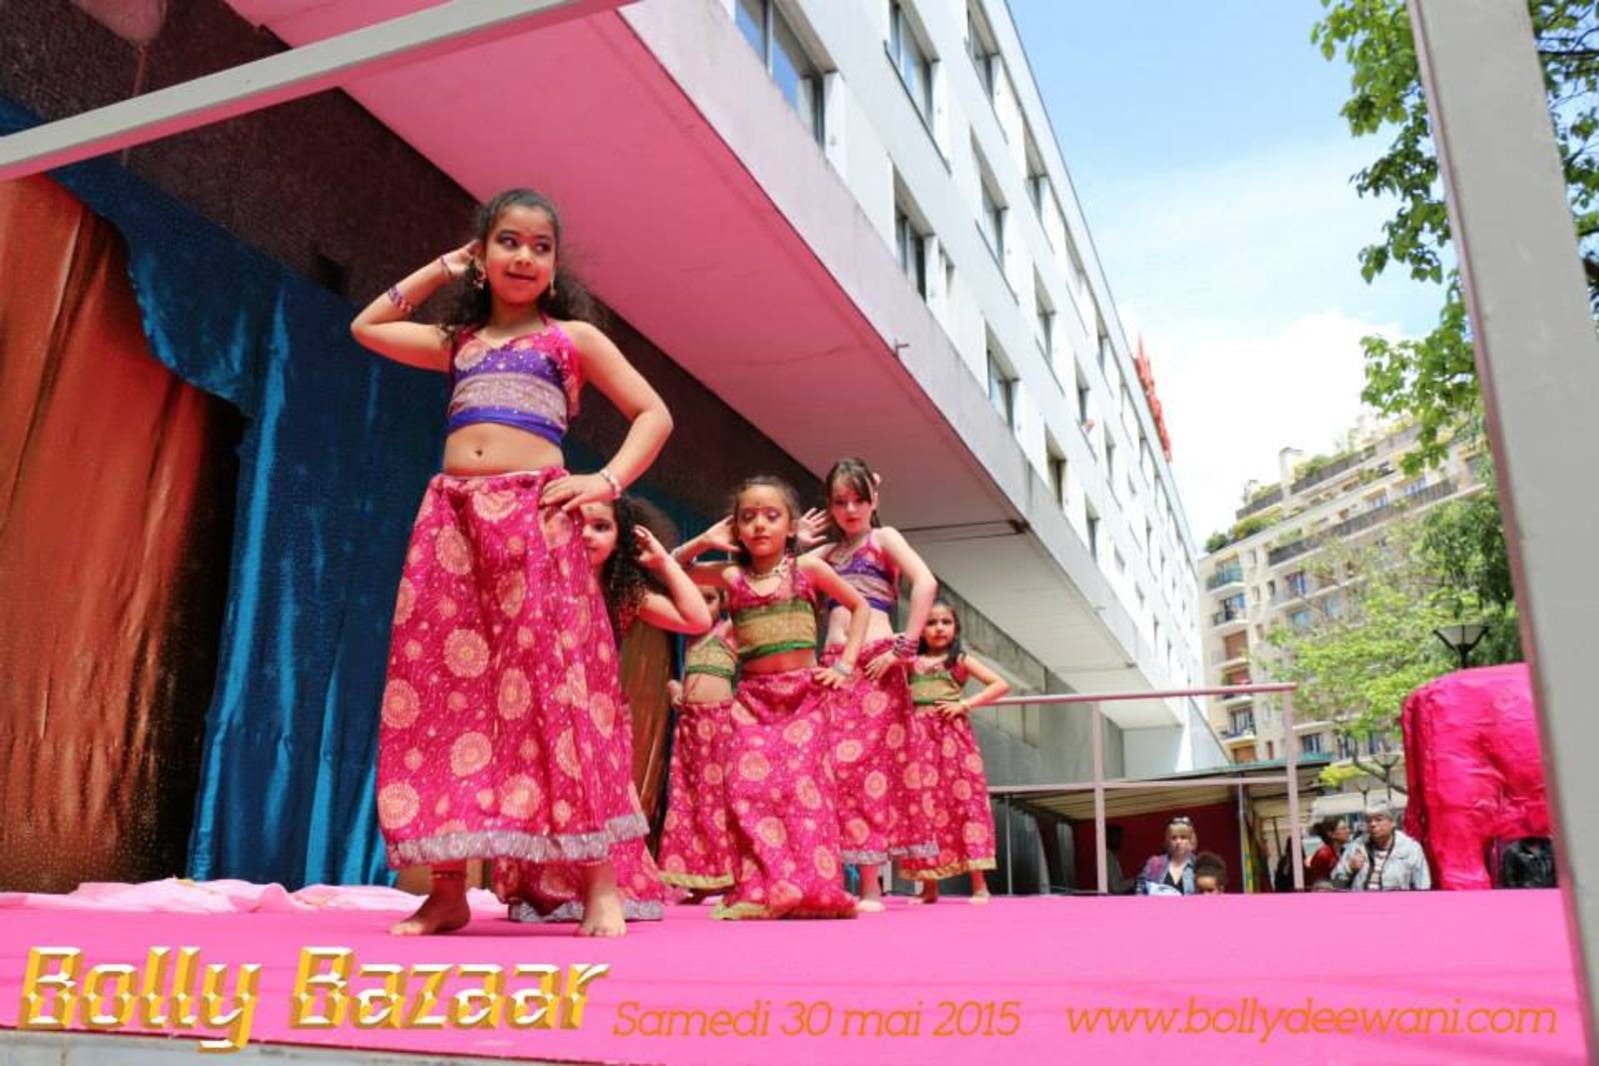 Danse Bollywood enfant - Bolly Deewani, danse Bollywood et Fitness Bollywood